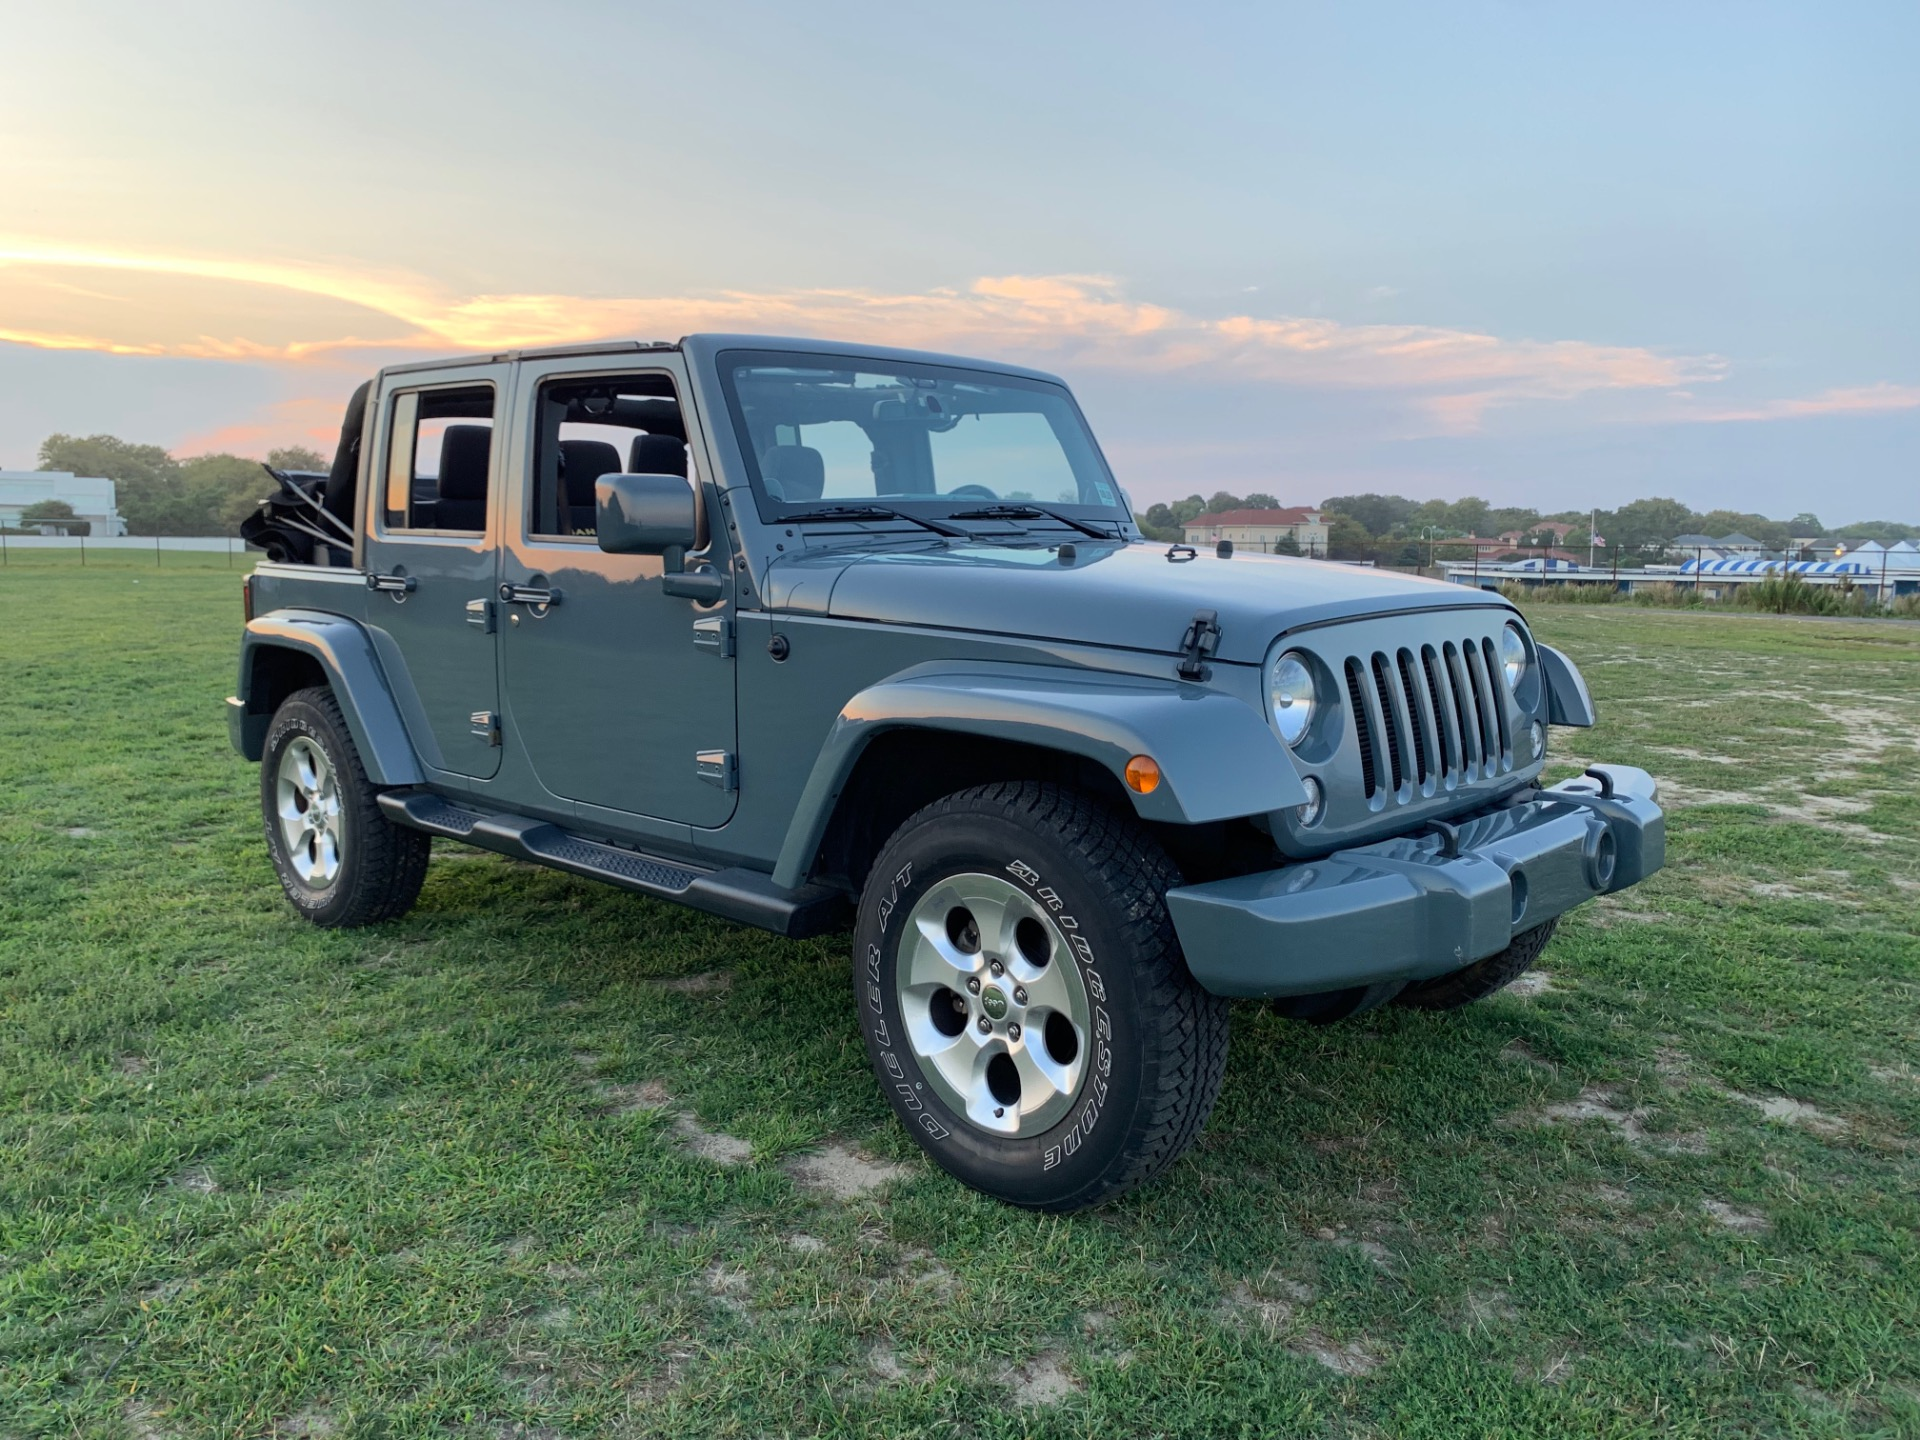 Used 2014 Jeep Wrangler Unlimited Sahara For Sale 26 900 Legend Leasing Stock 1917